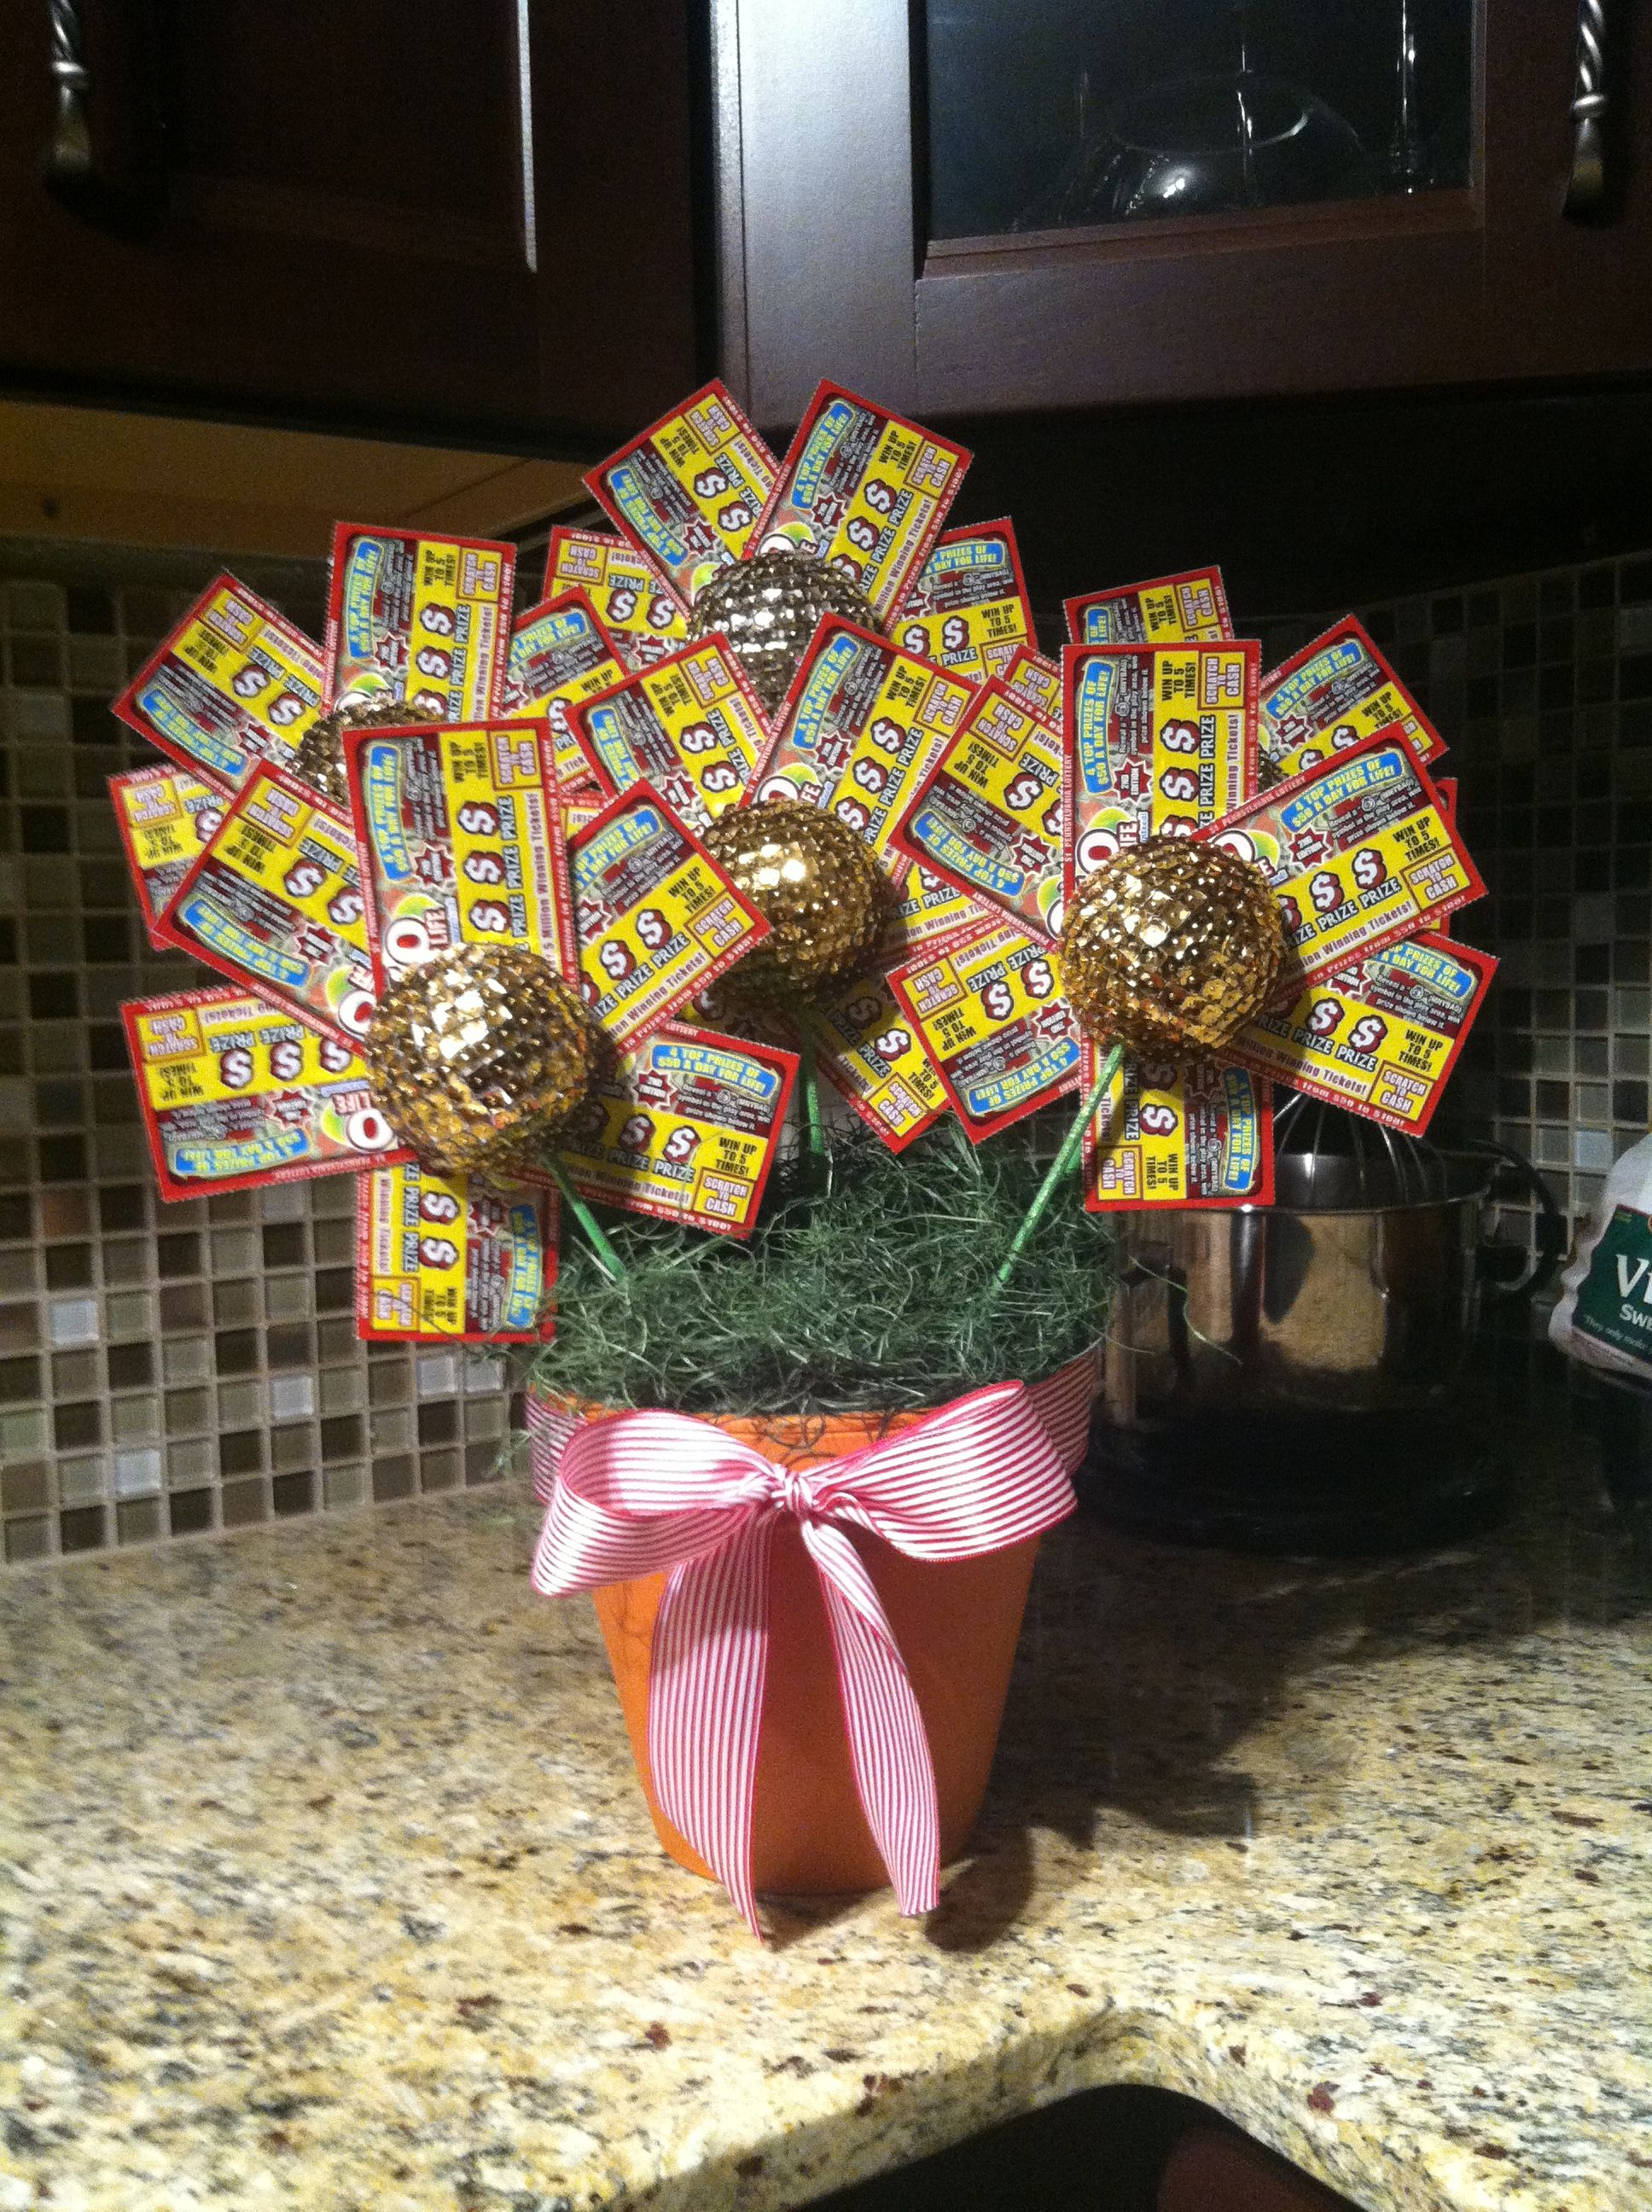 Lottery ticket flower pot. i see a christmas present for the boss ...